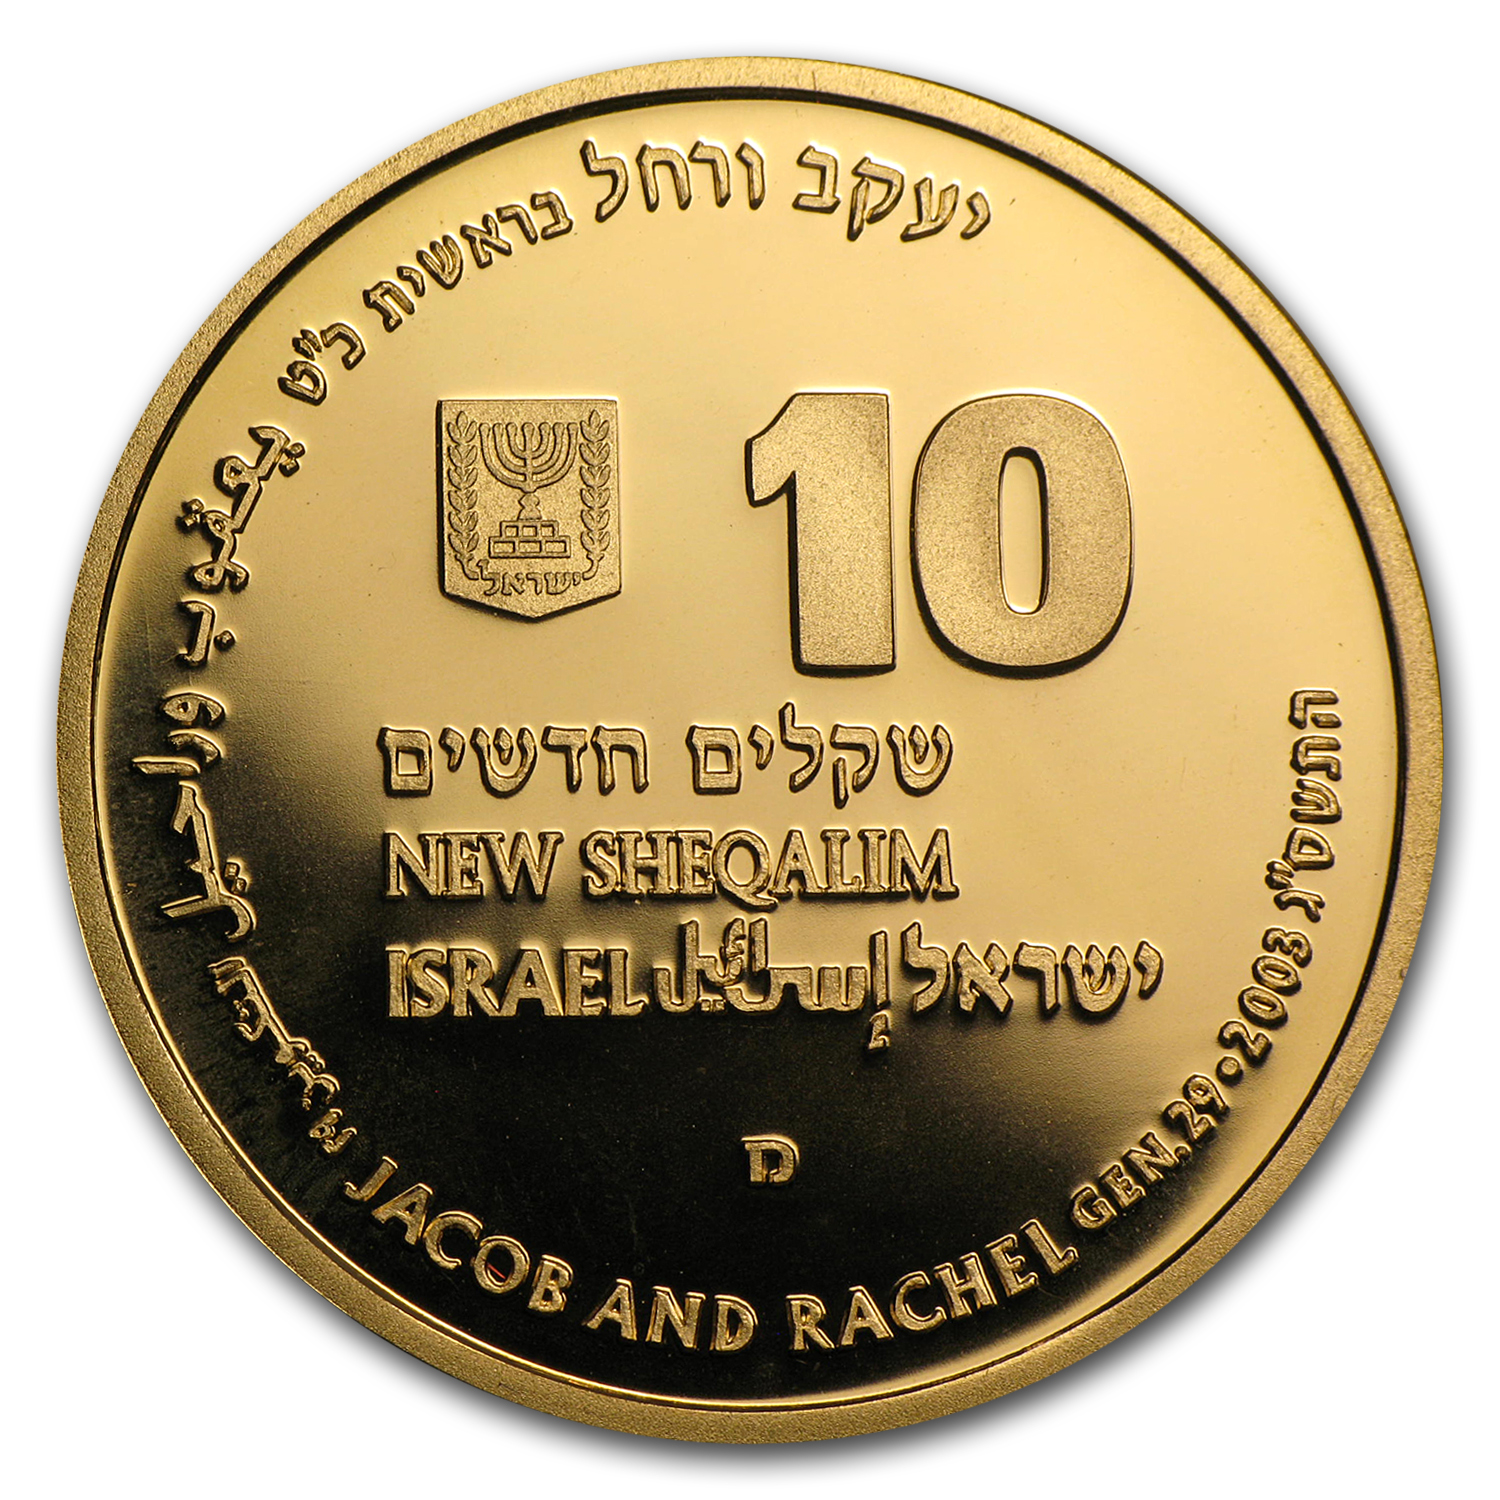 2003 Israel 1/2 oz Proof Gold Jacob and Rachel (w/ Box & COA)